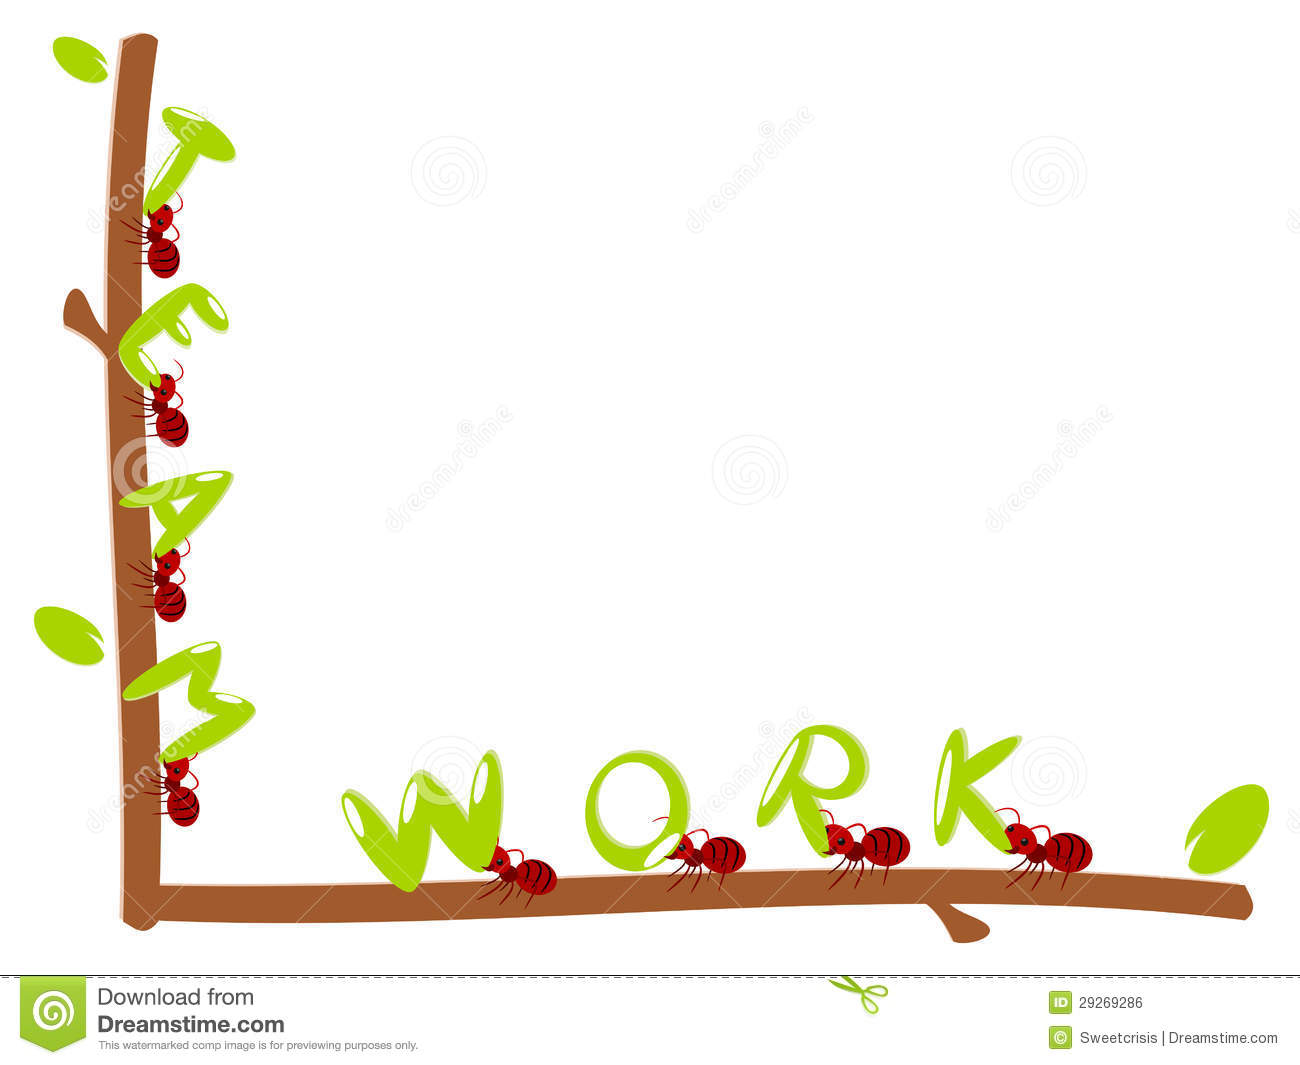 Red Ants Text Teamwork Illustration Royalty Free Stock Image - Image ...